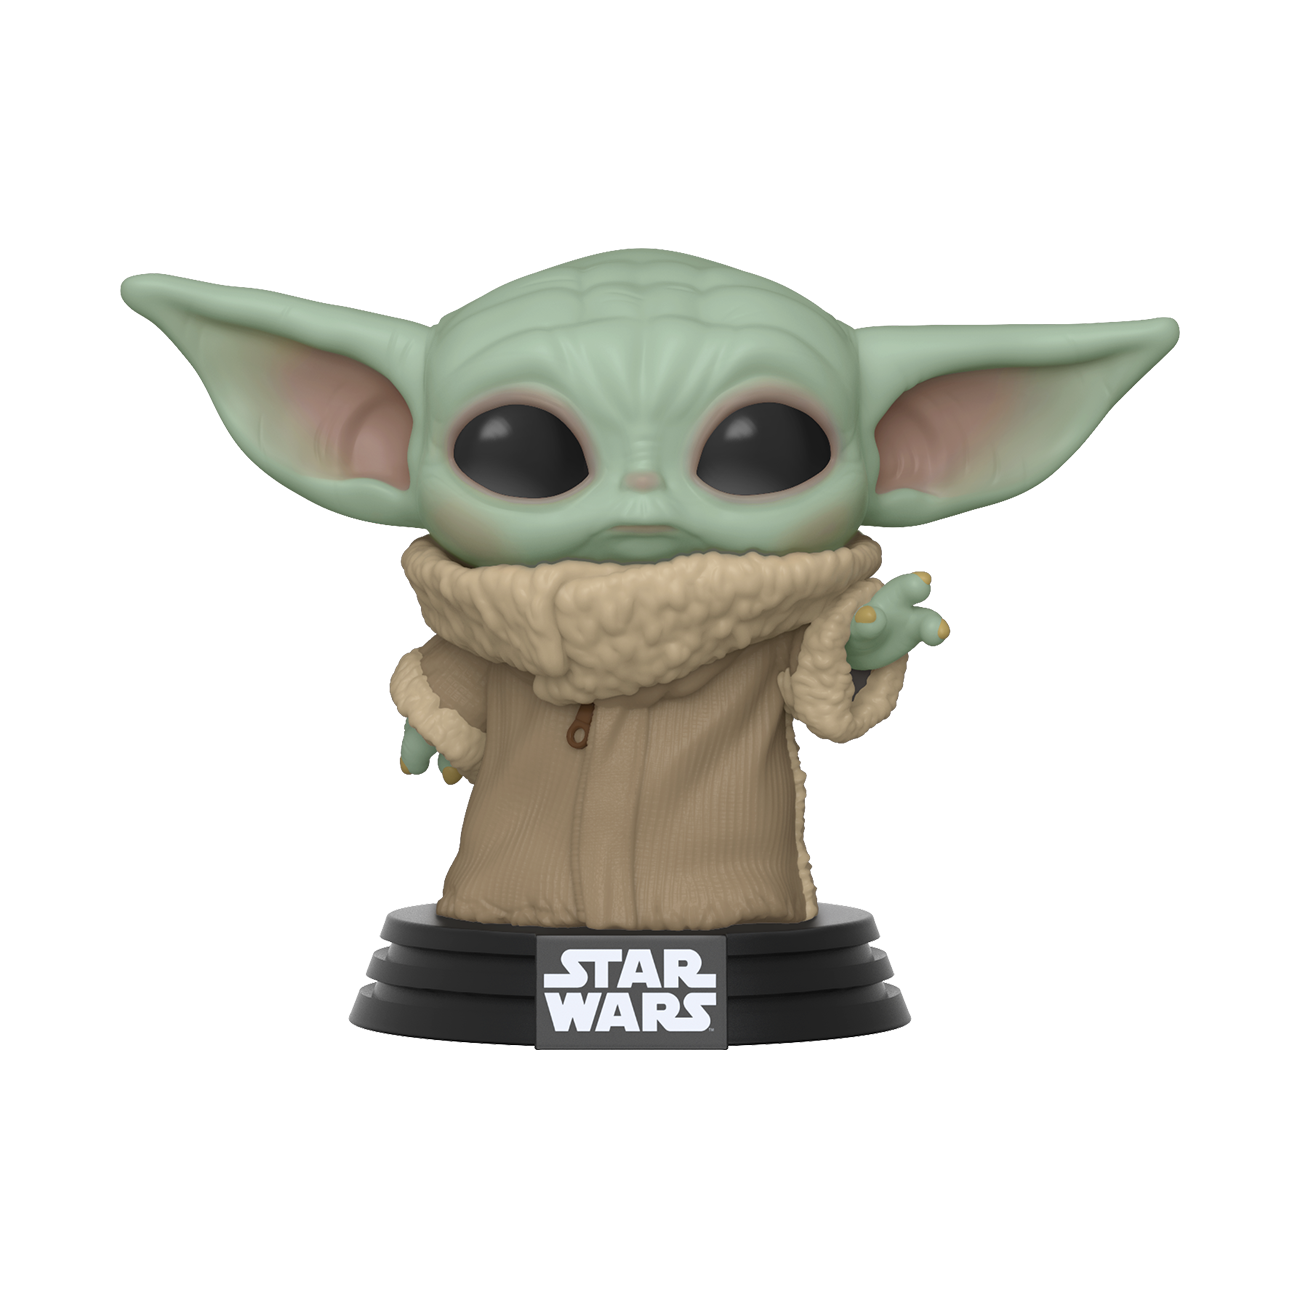 Baby Yoda Toys Where To Buy Baby Yoda Mandalorian Products Money People who helped me make the characters: baby yoda toys where to buy baby yoda